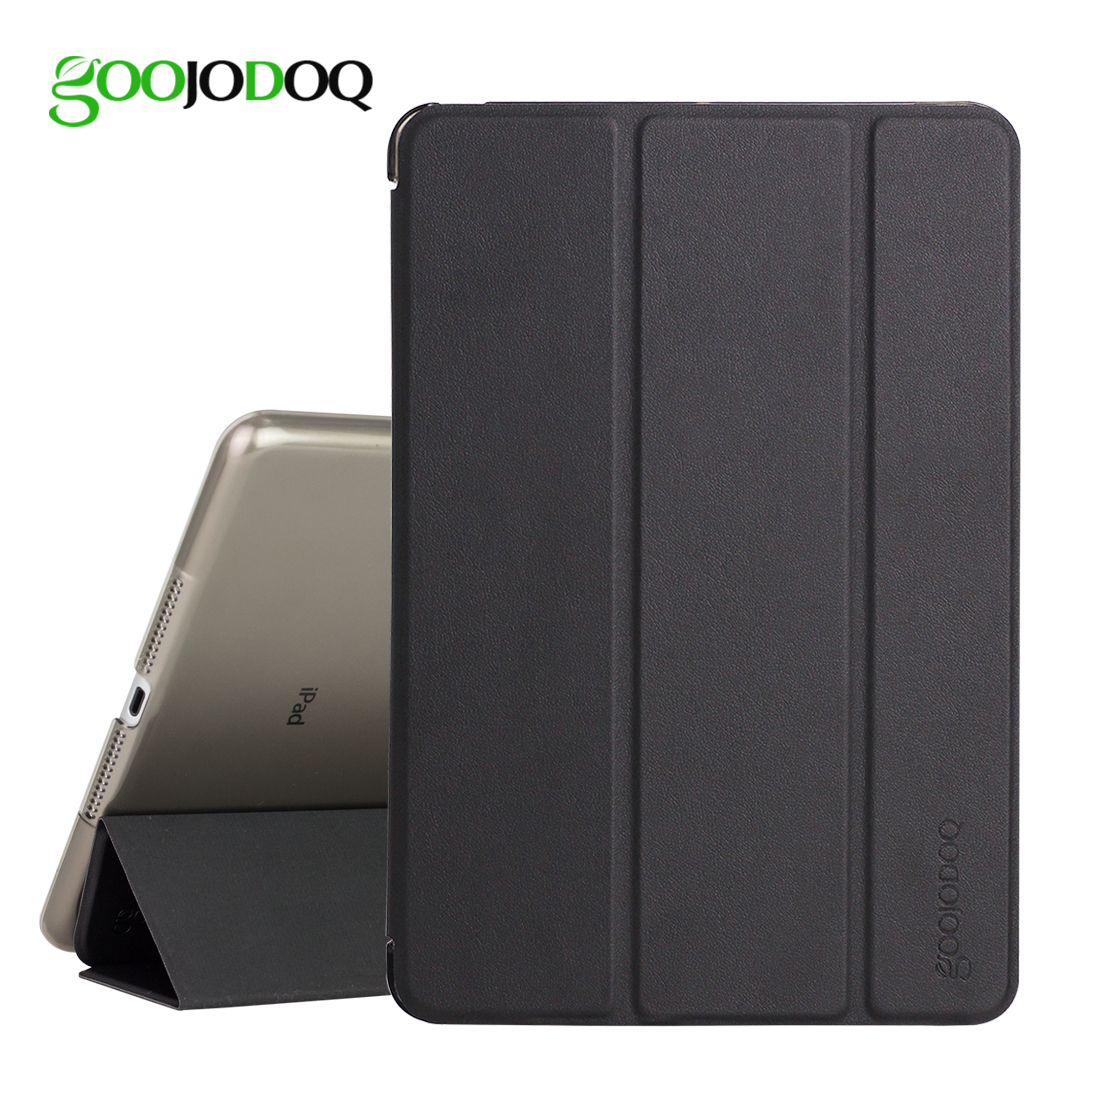 For iPad 9.7 2017 Case,GOOJODOQ Ultra Slim PU Leather Smart Cover+PC Hard Back Coque Tri-fold Stand for Apple iPad 2017 A1822 nice soft silicone back magnetic smart pu leather case for apple 2017 ipad air 1 cover new slim thin flip tpu protective case